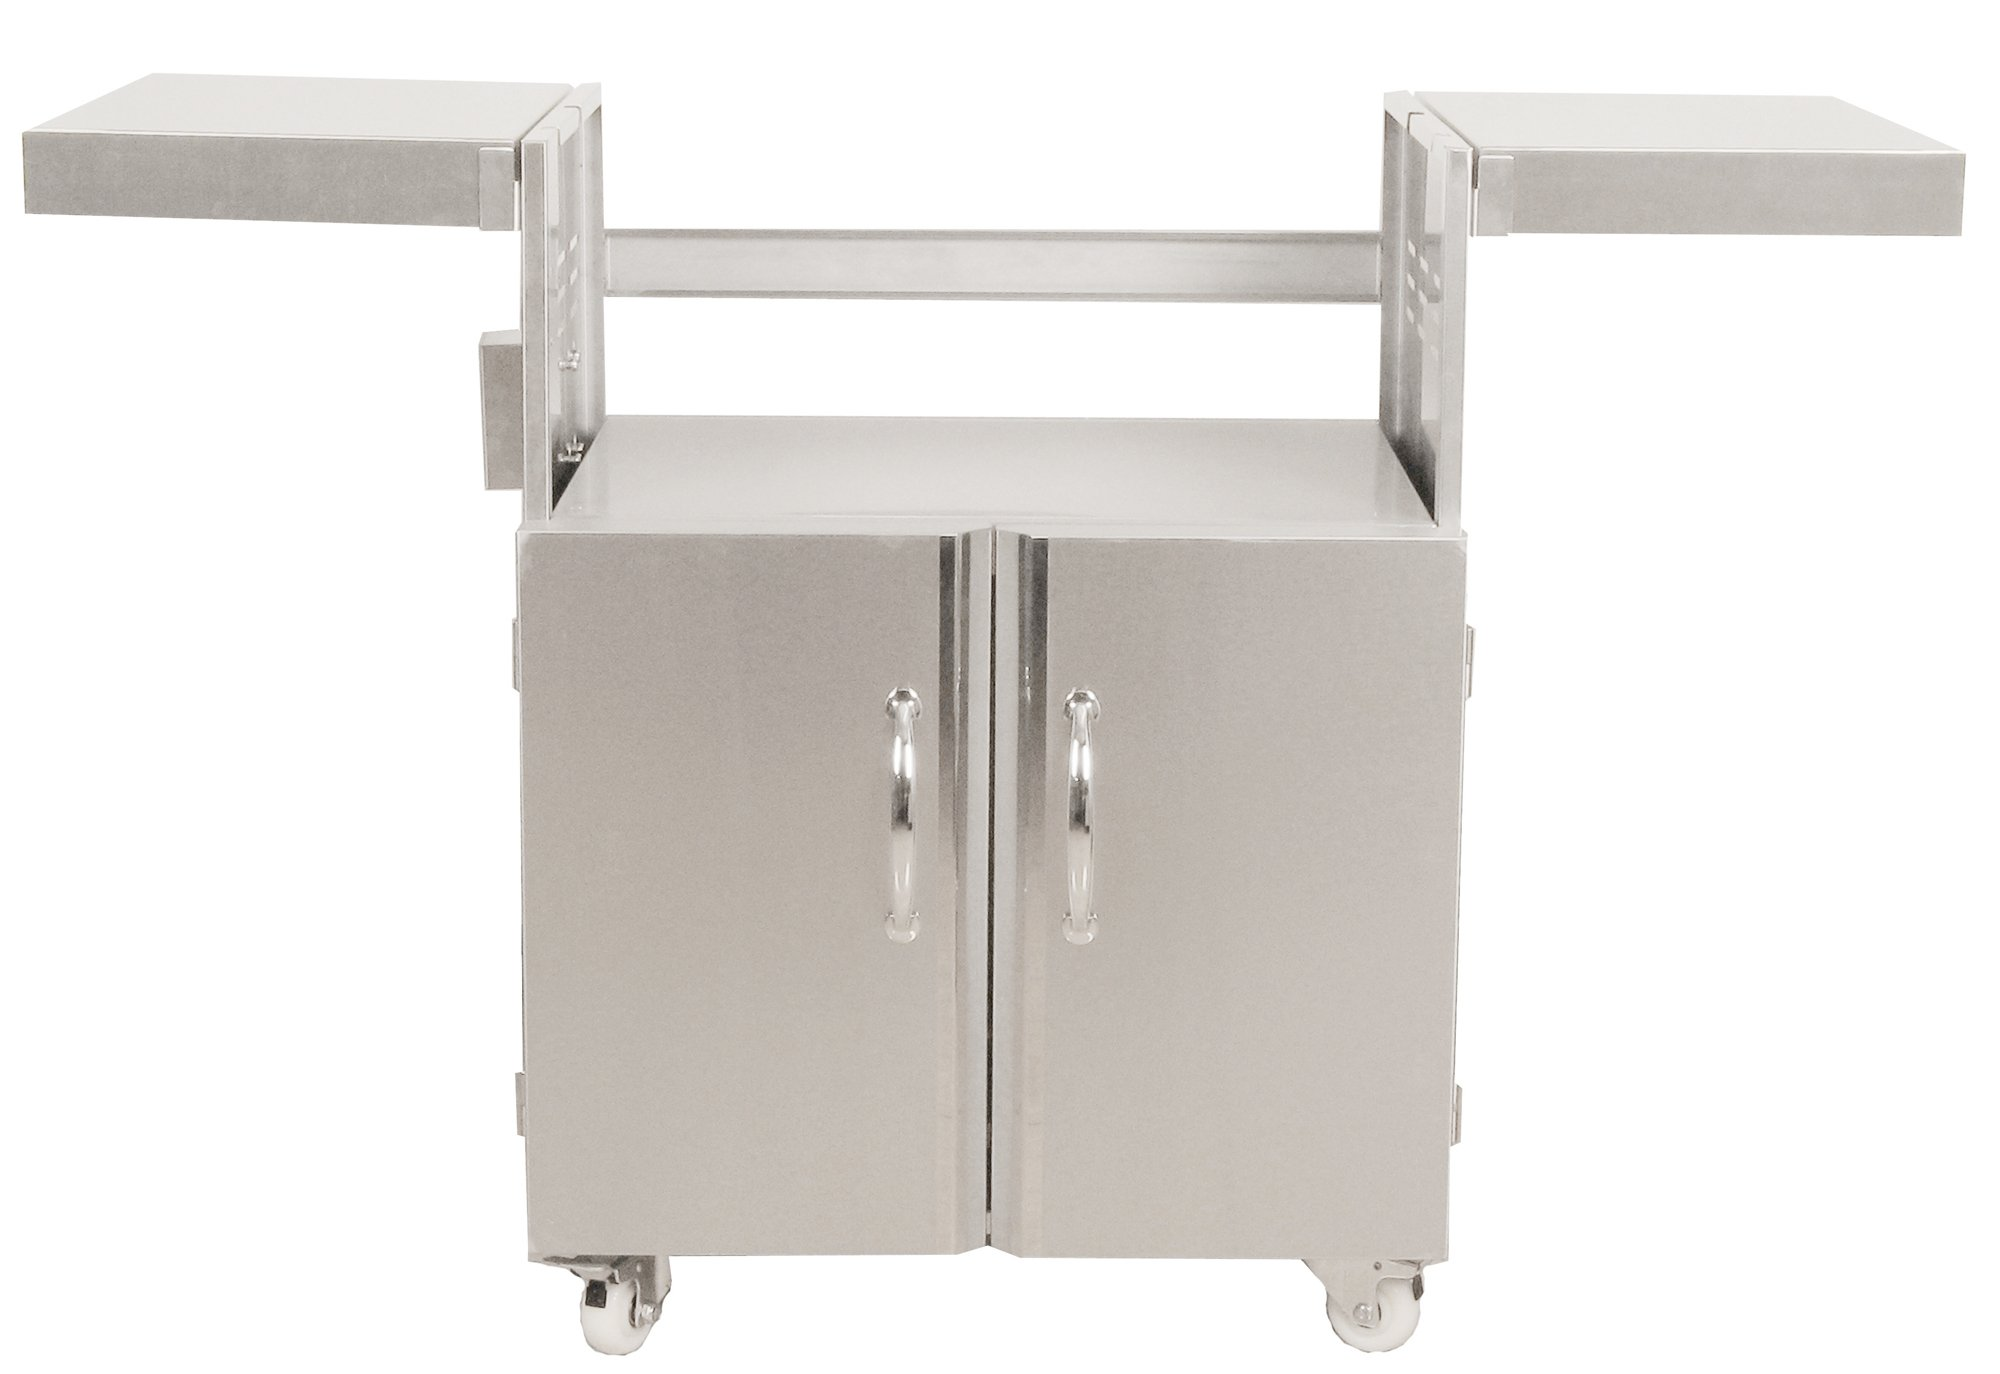 SUNSTONE Cart3B Grill Cart for 3 Burners, 28-Inch by SUNSTONE